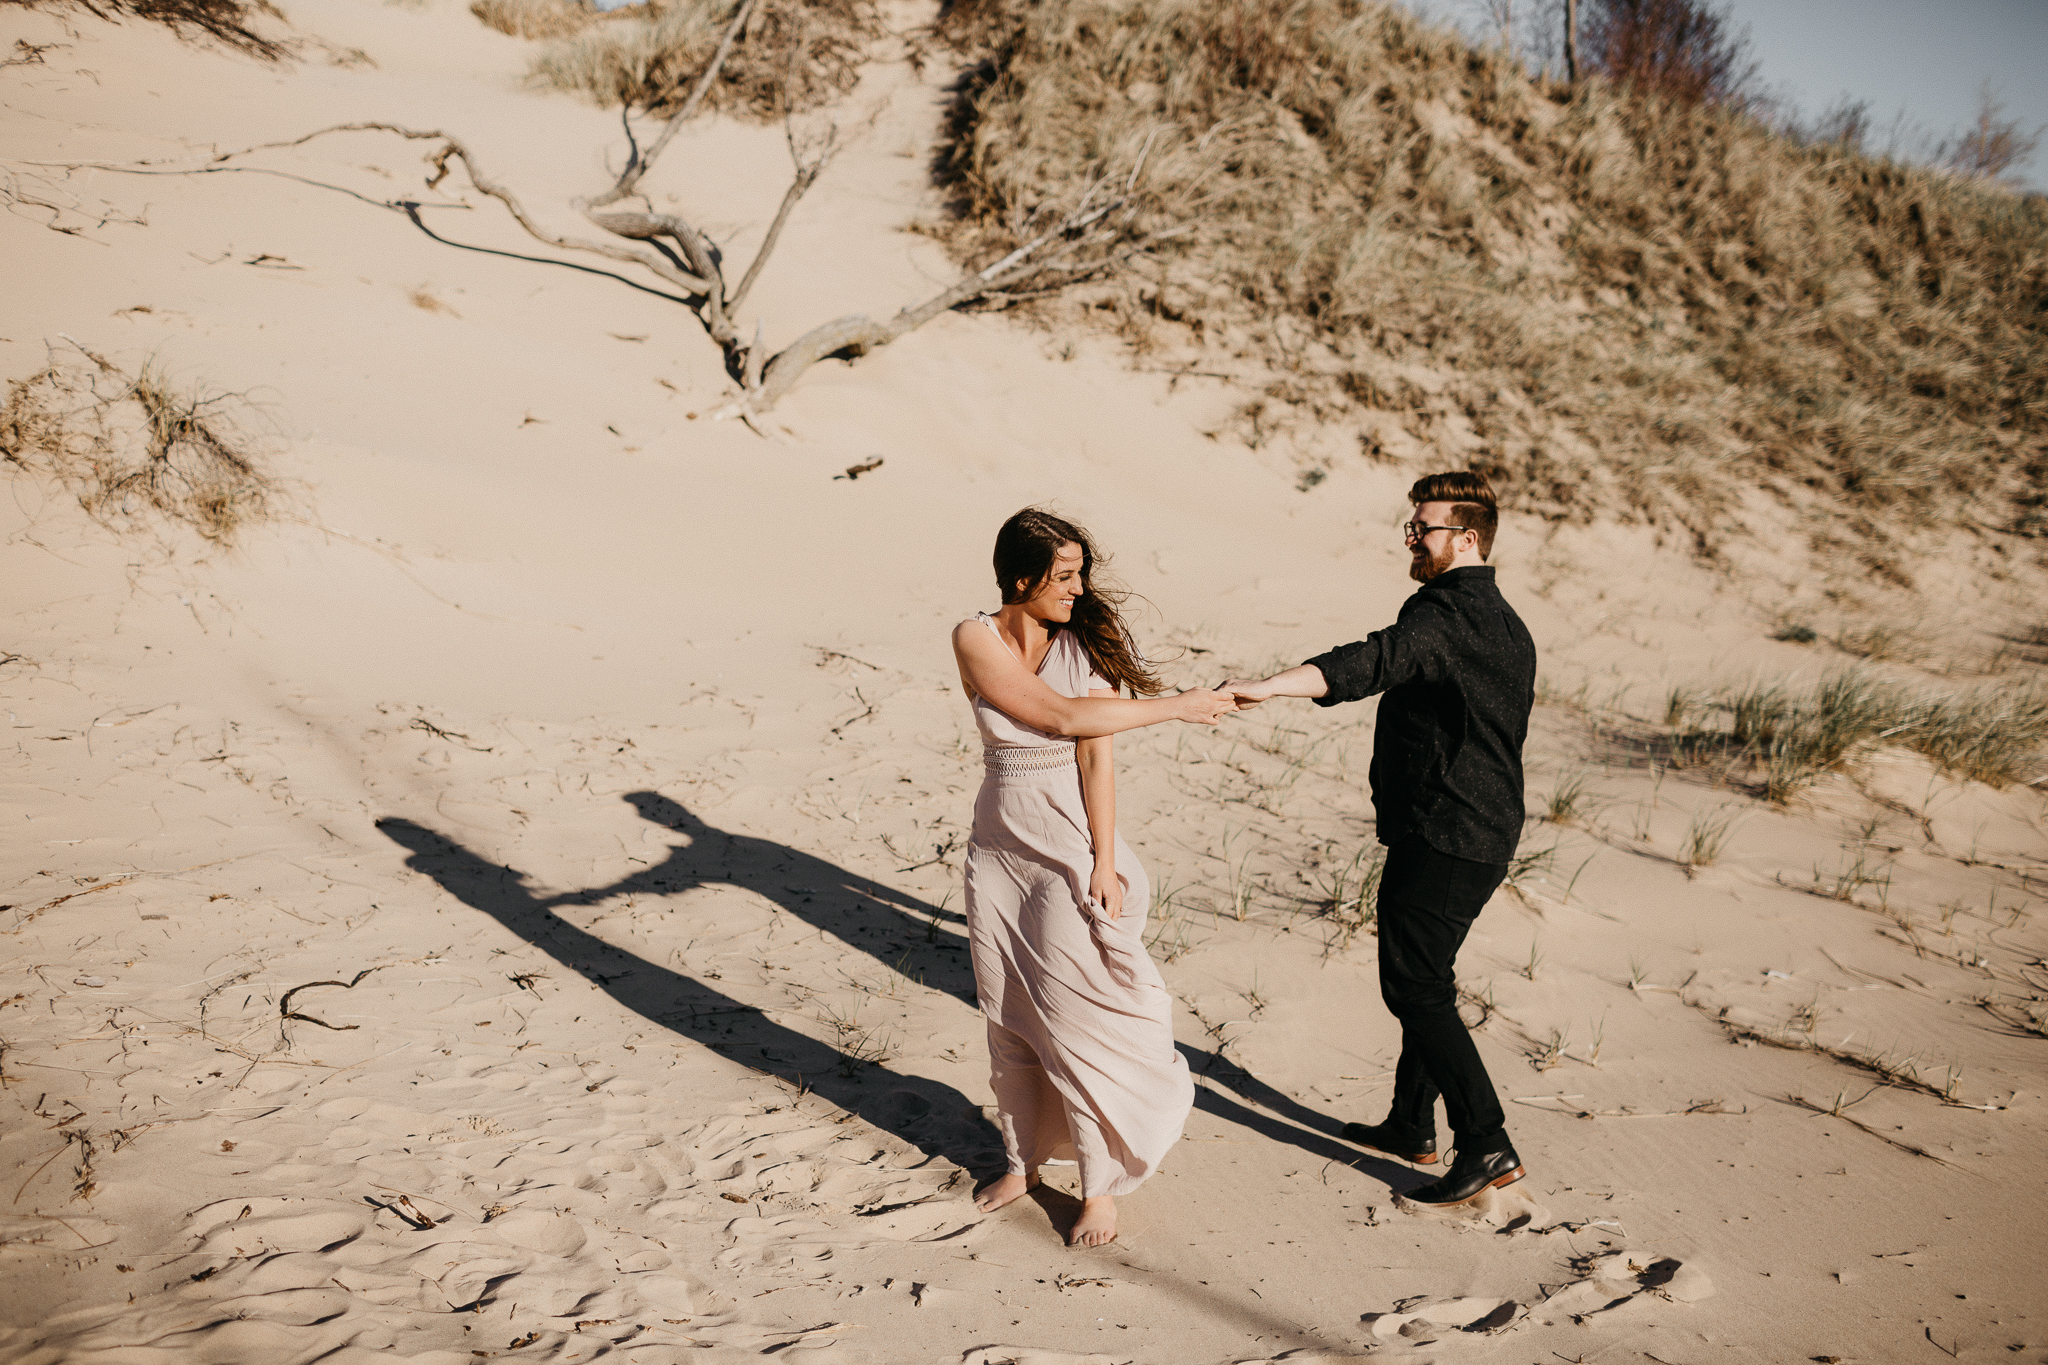 eastlyn-bright-silver-lake-sand-dunes-michigan-wedding-engagement-photographer-14.jpg